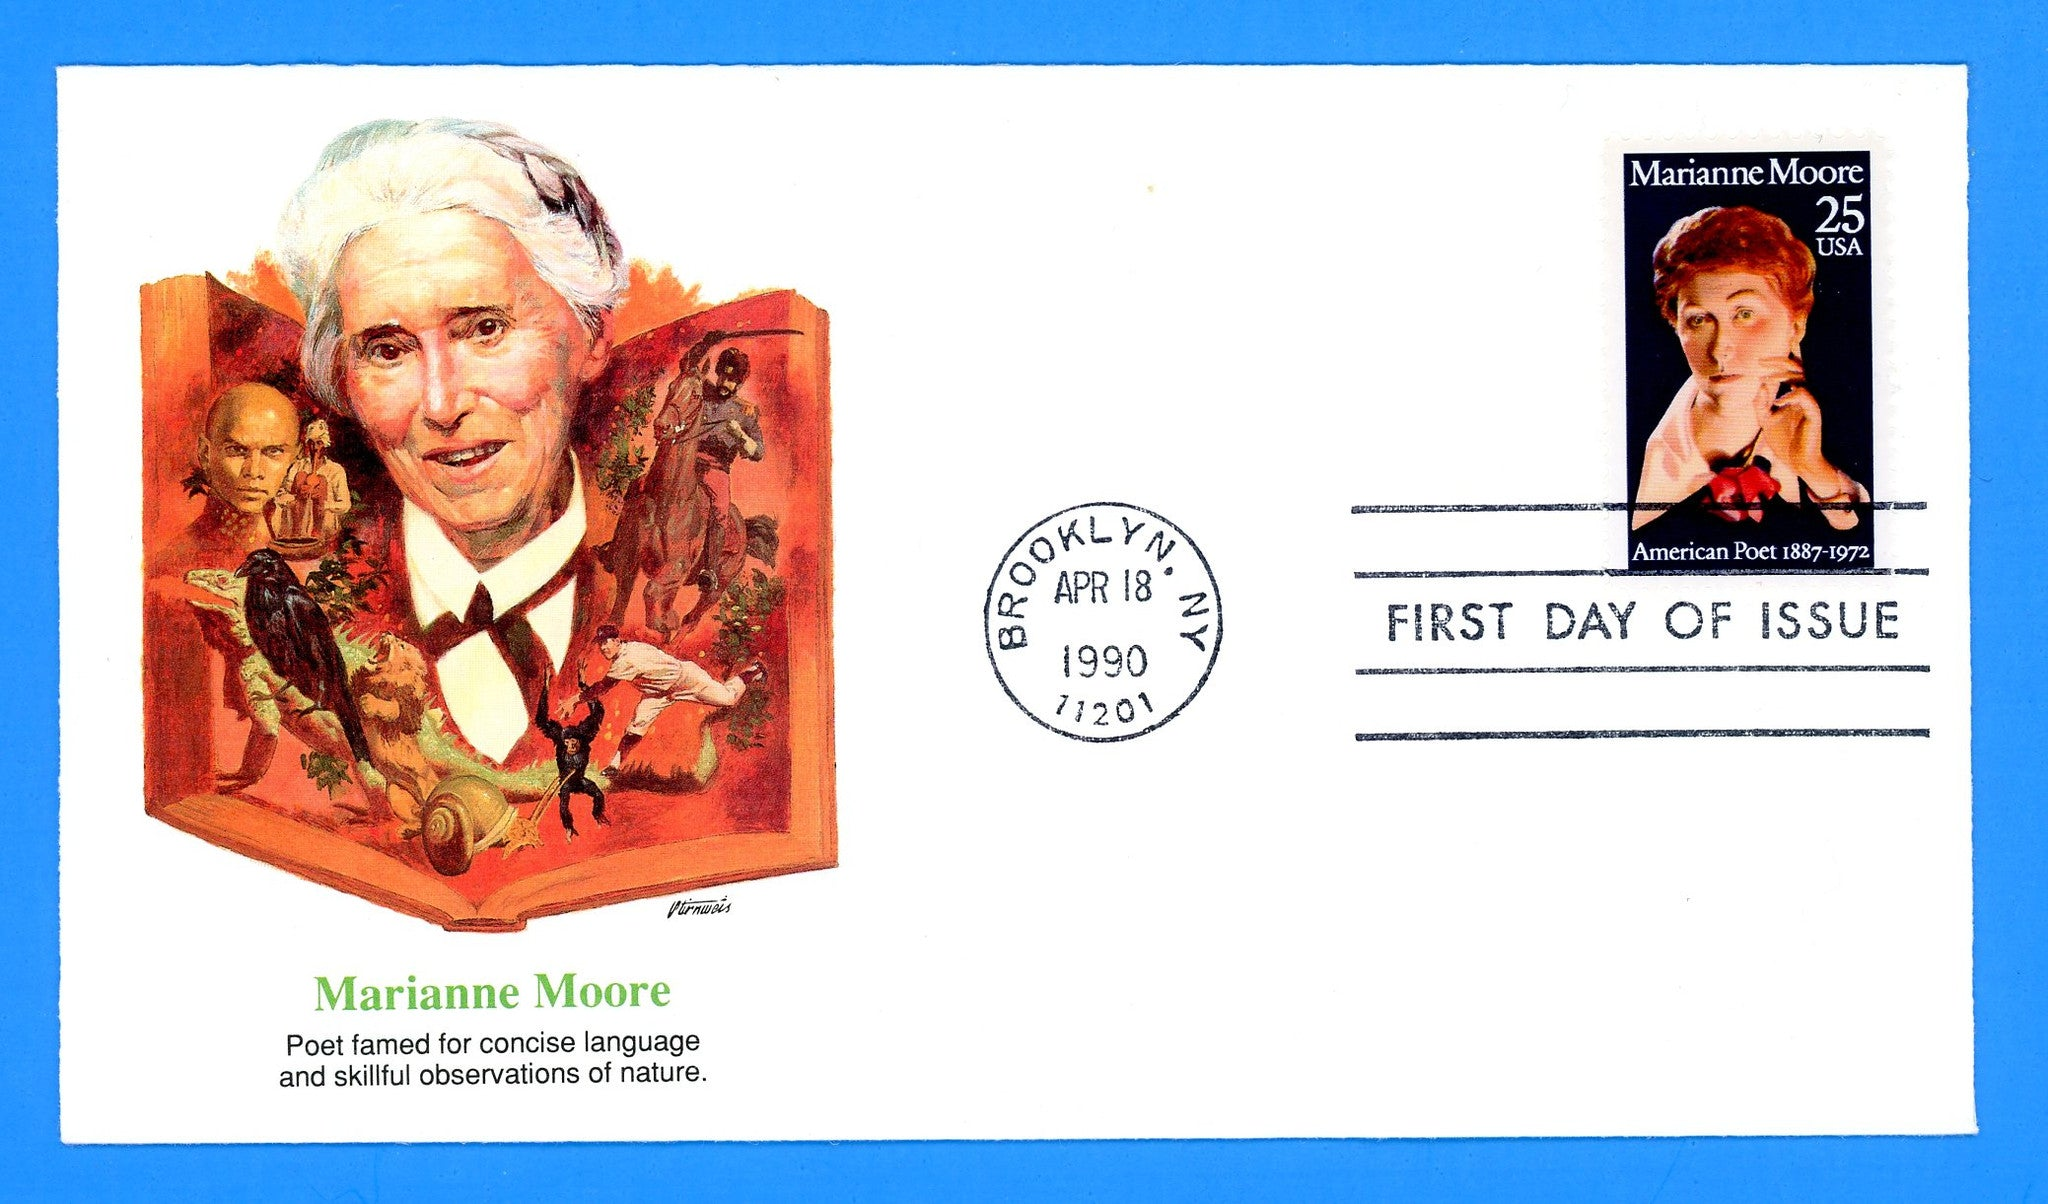 Marianne Moore, Poet First Day Cover by Fleetwood